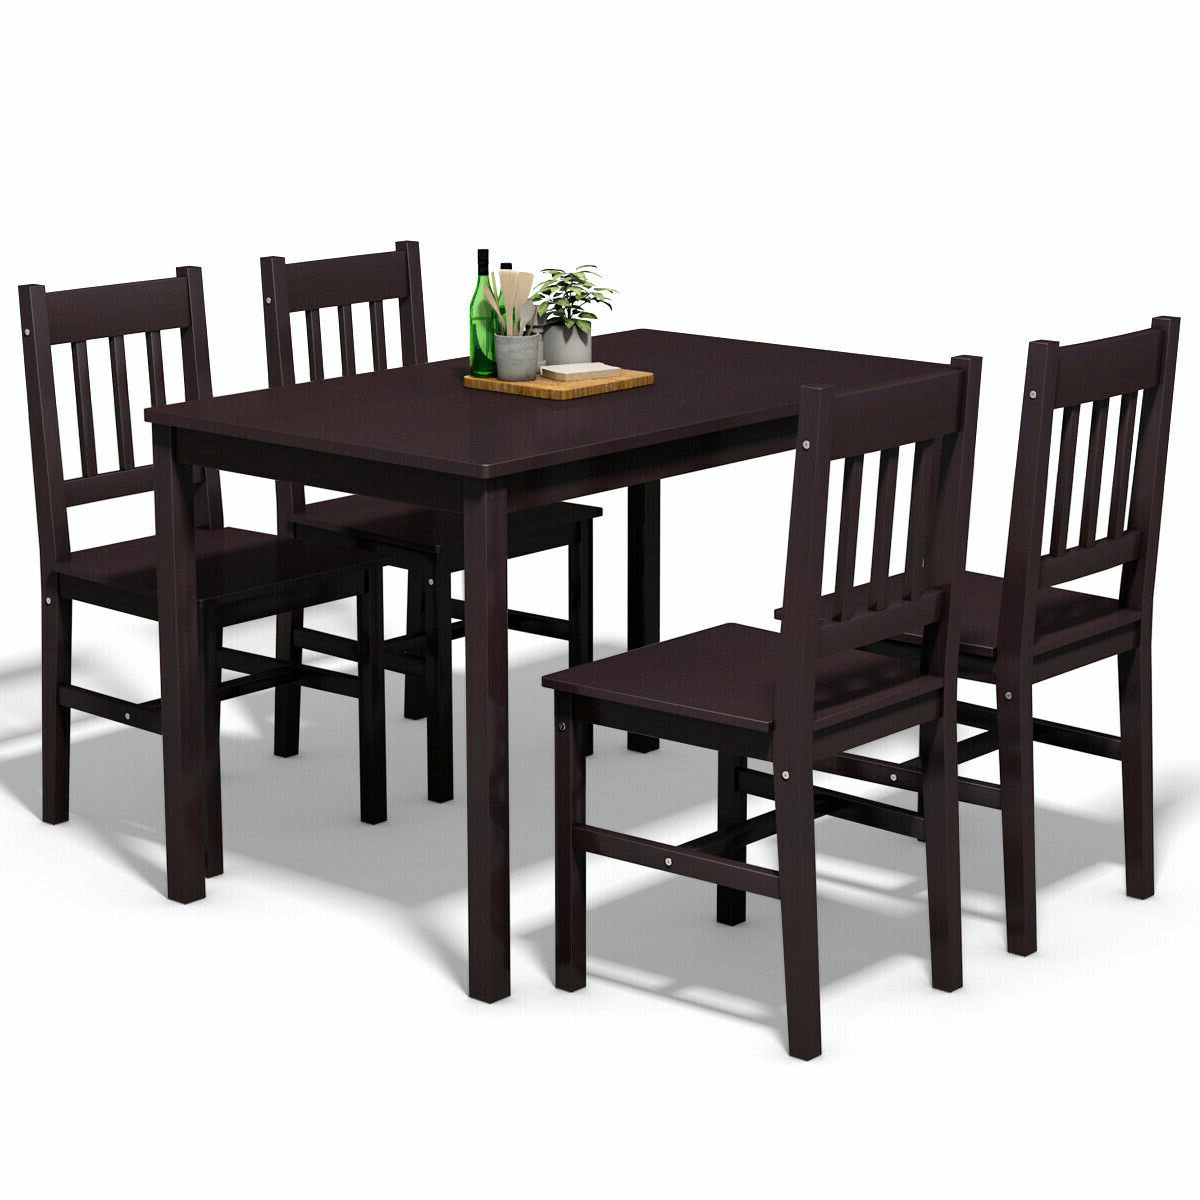 Miskell 5 Piece Dining Sets With Regard To Recent Winston Porter Sundberg 5 Piece Solid Wood Dining Set & Reviews (View 15 of 25)